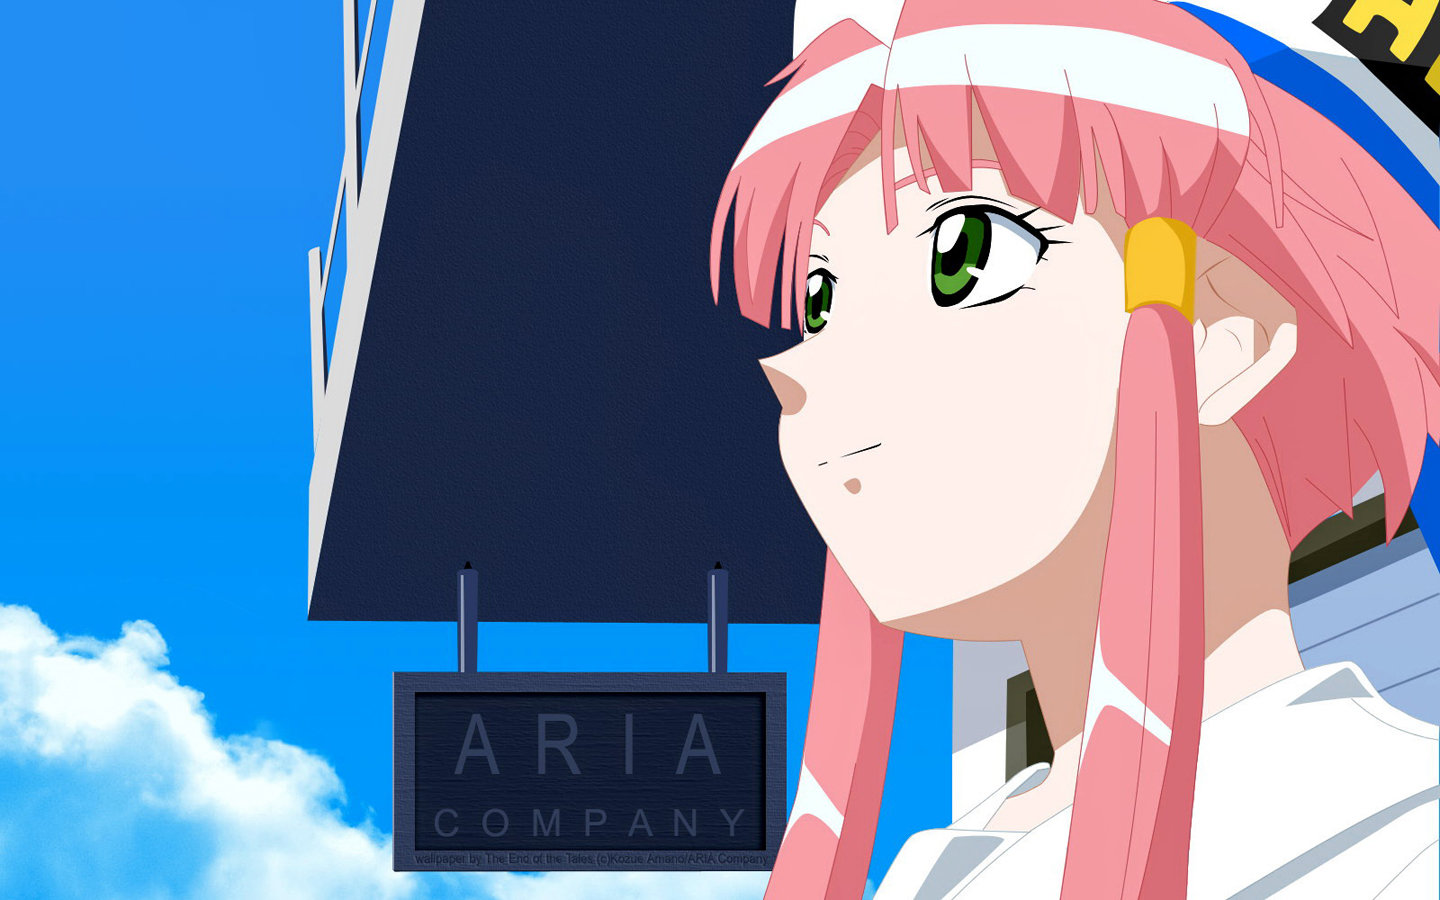 Free Aria high quality wallpaper ID:179296 for hd 1440x900 computer